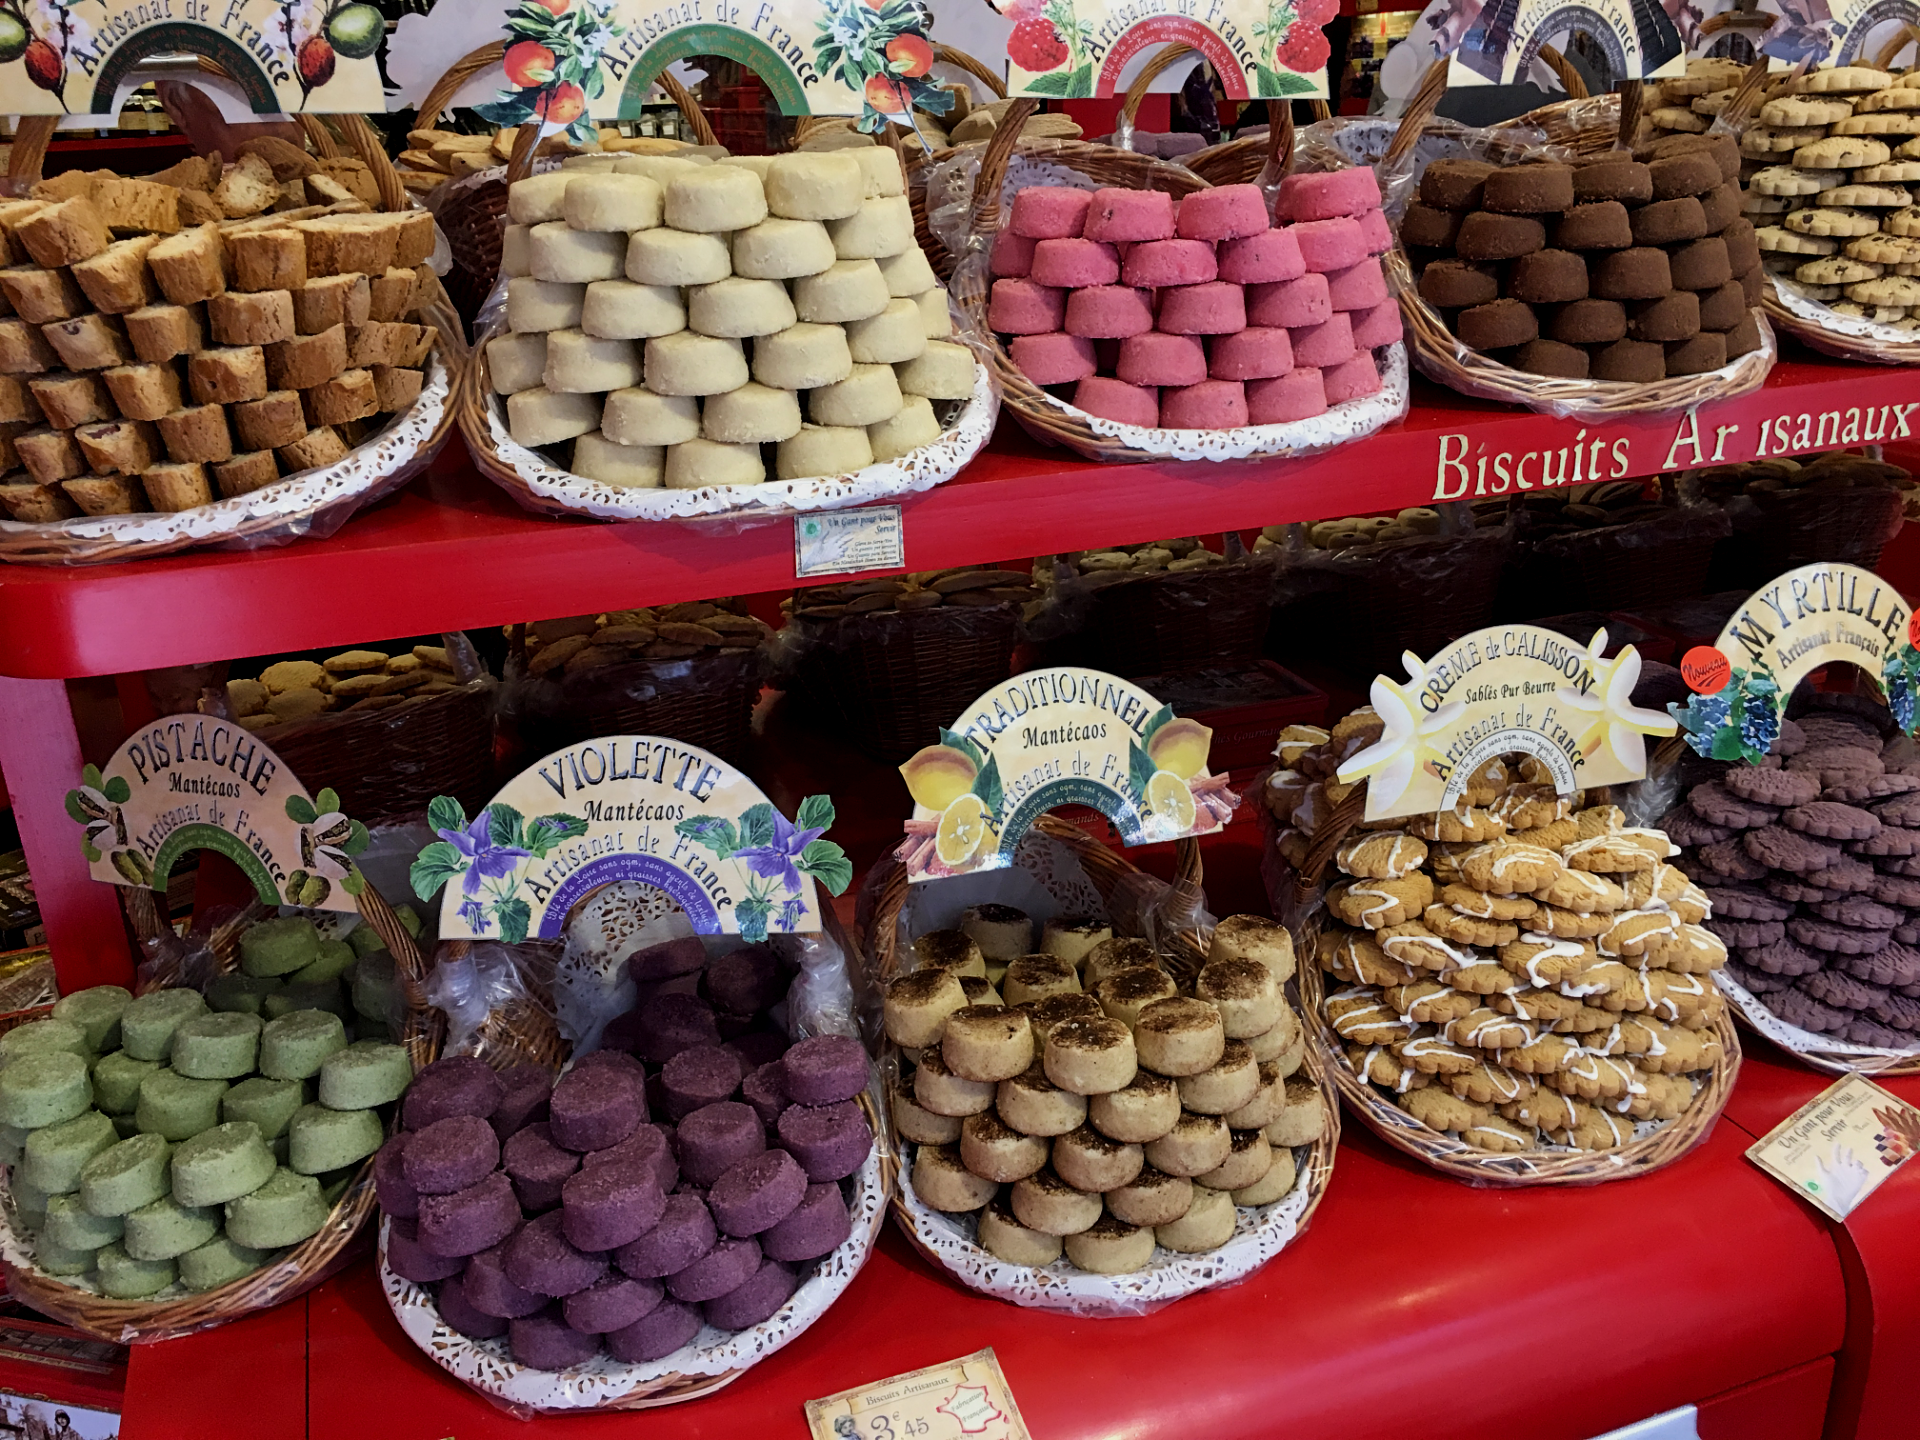 Mantecaos Peches Gourmand Toulouse France